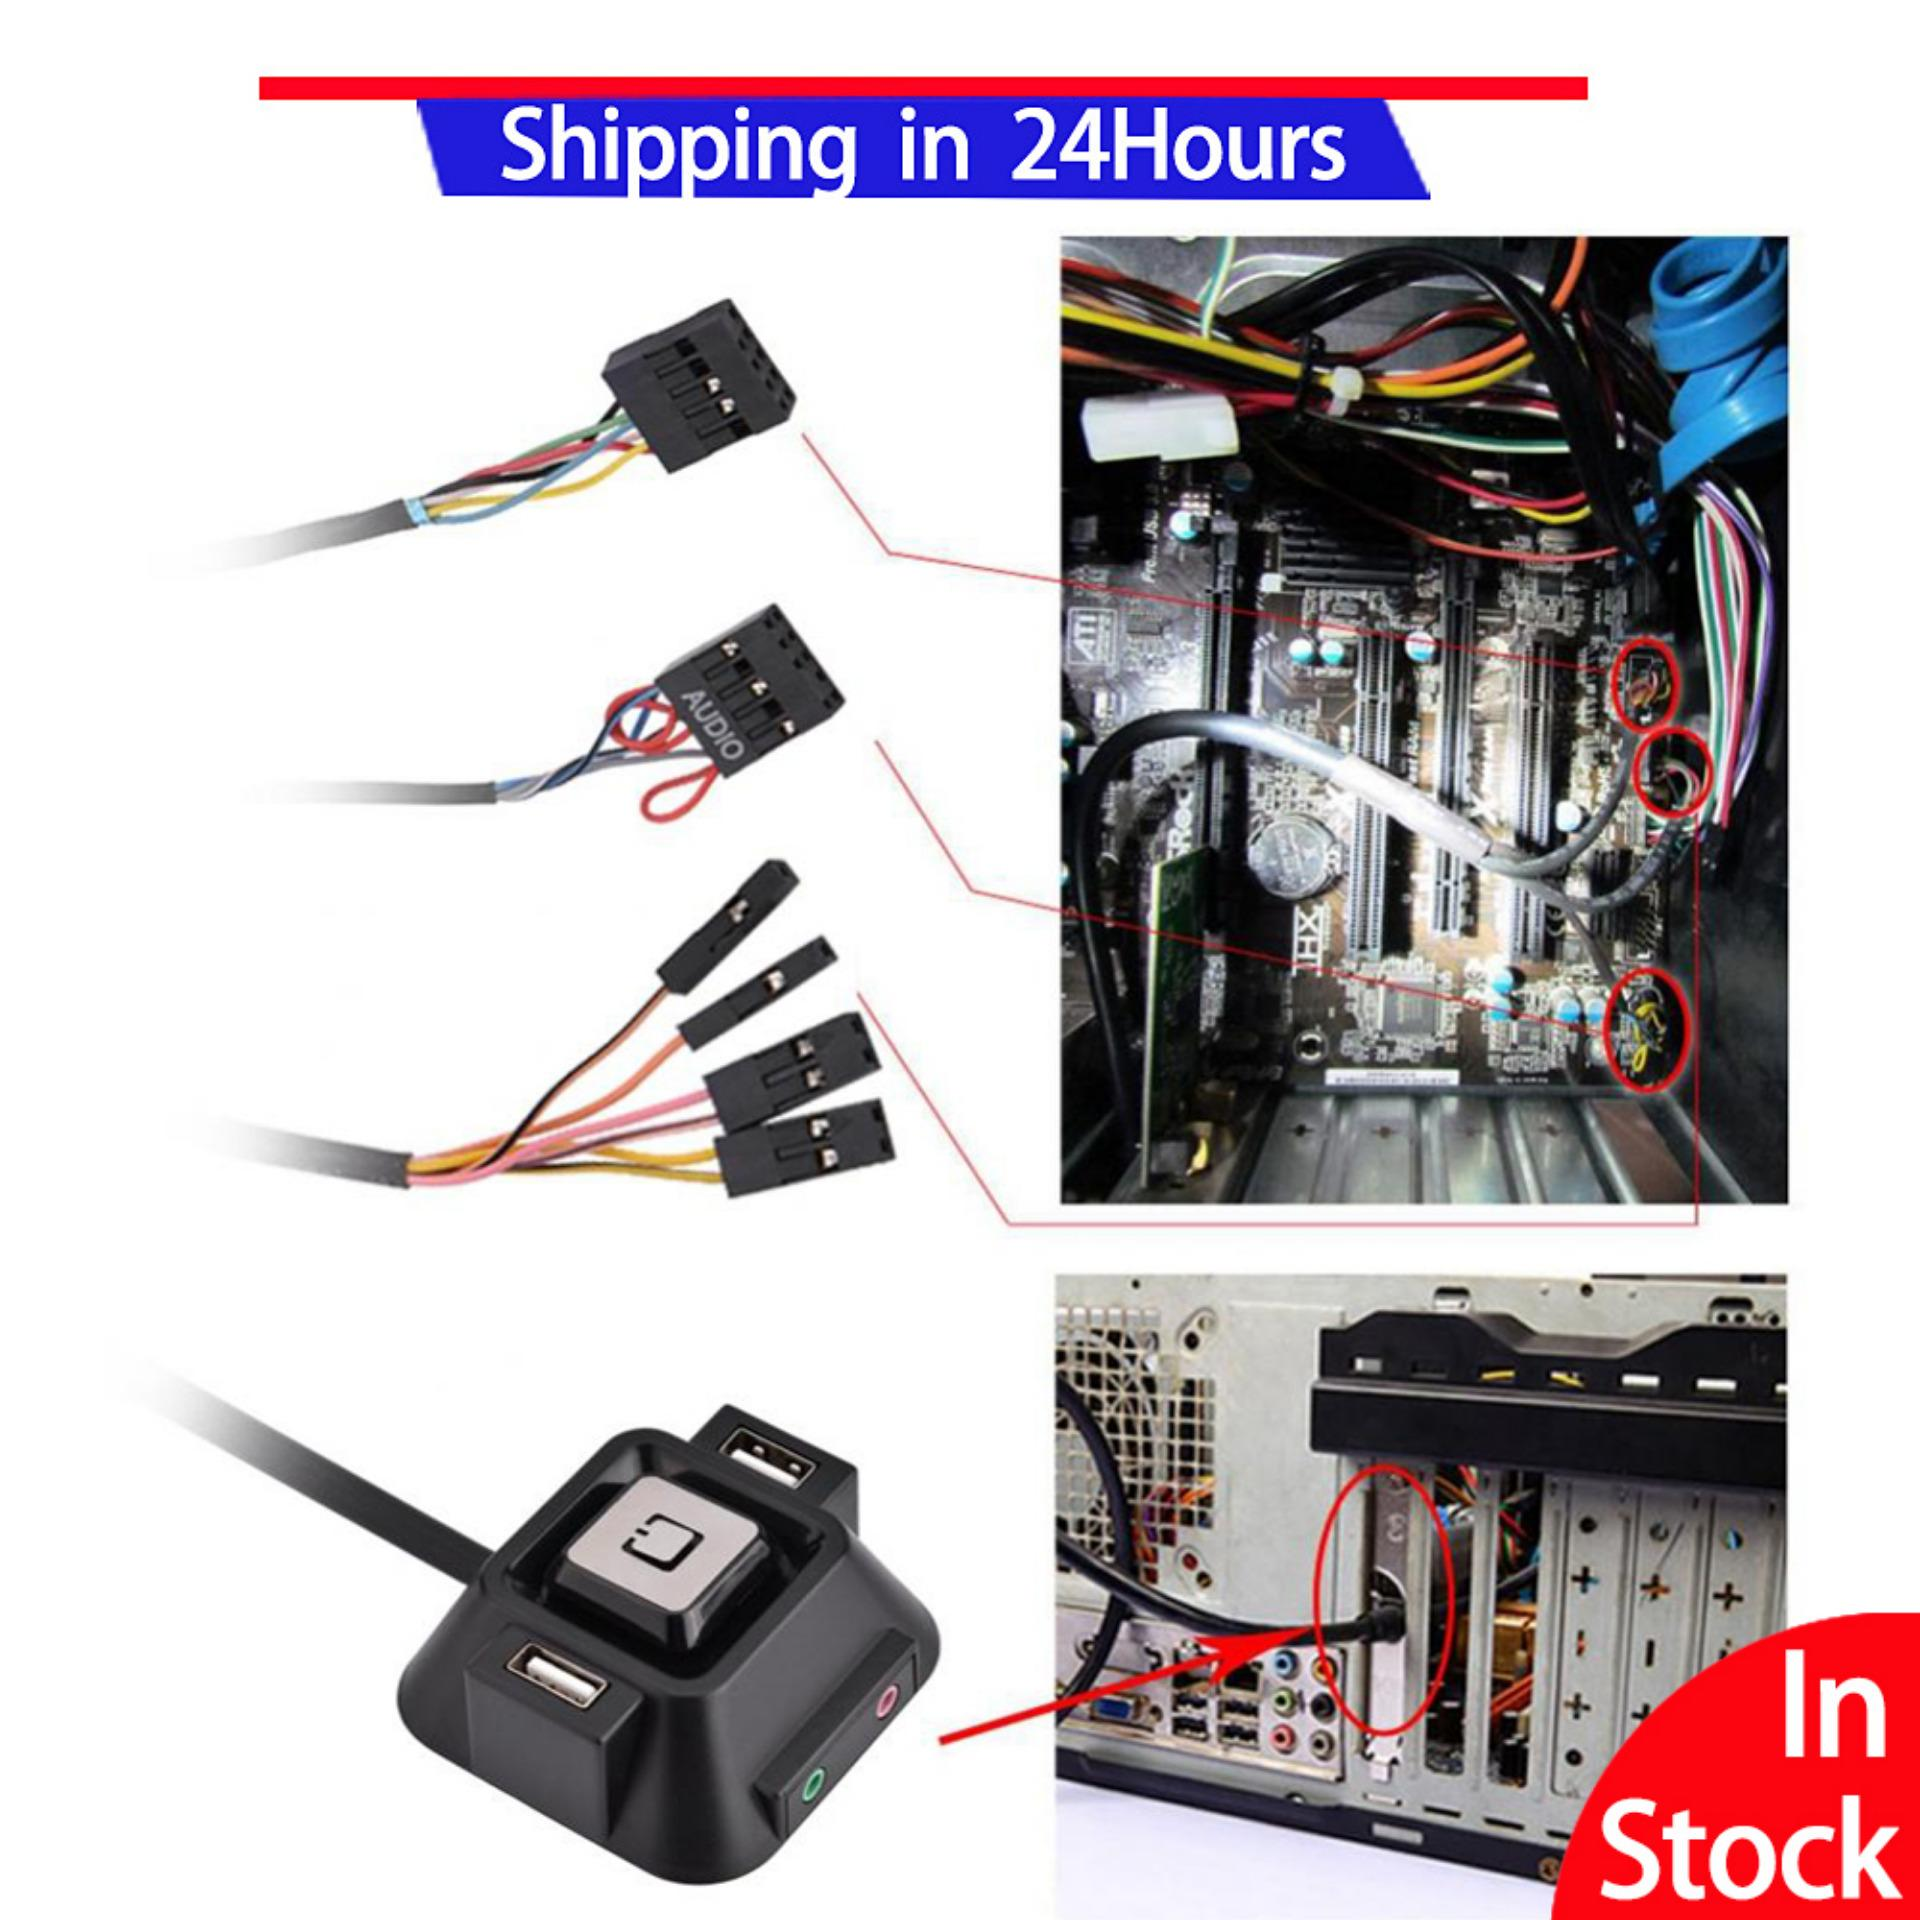 Oem Computer Switches Philippines Pc For Sale Front Dual Usb Wiring Diagram Desktop Case Switch Ports Power Reset Button Audio Microphone Port Intl